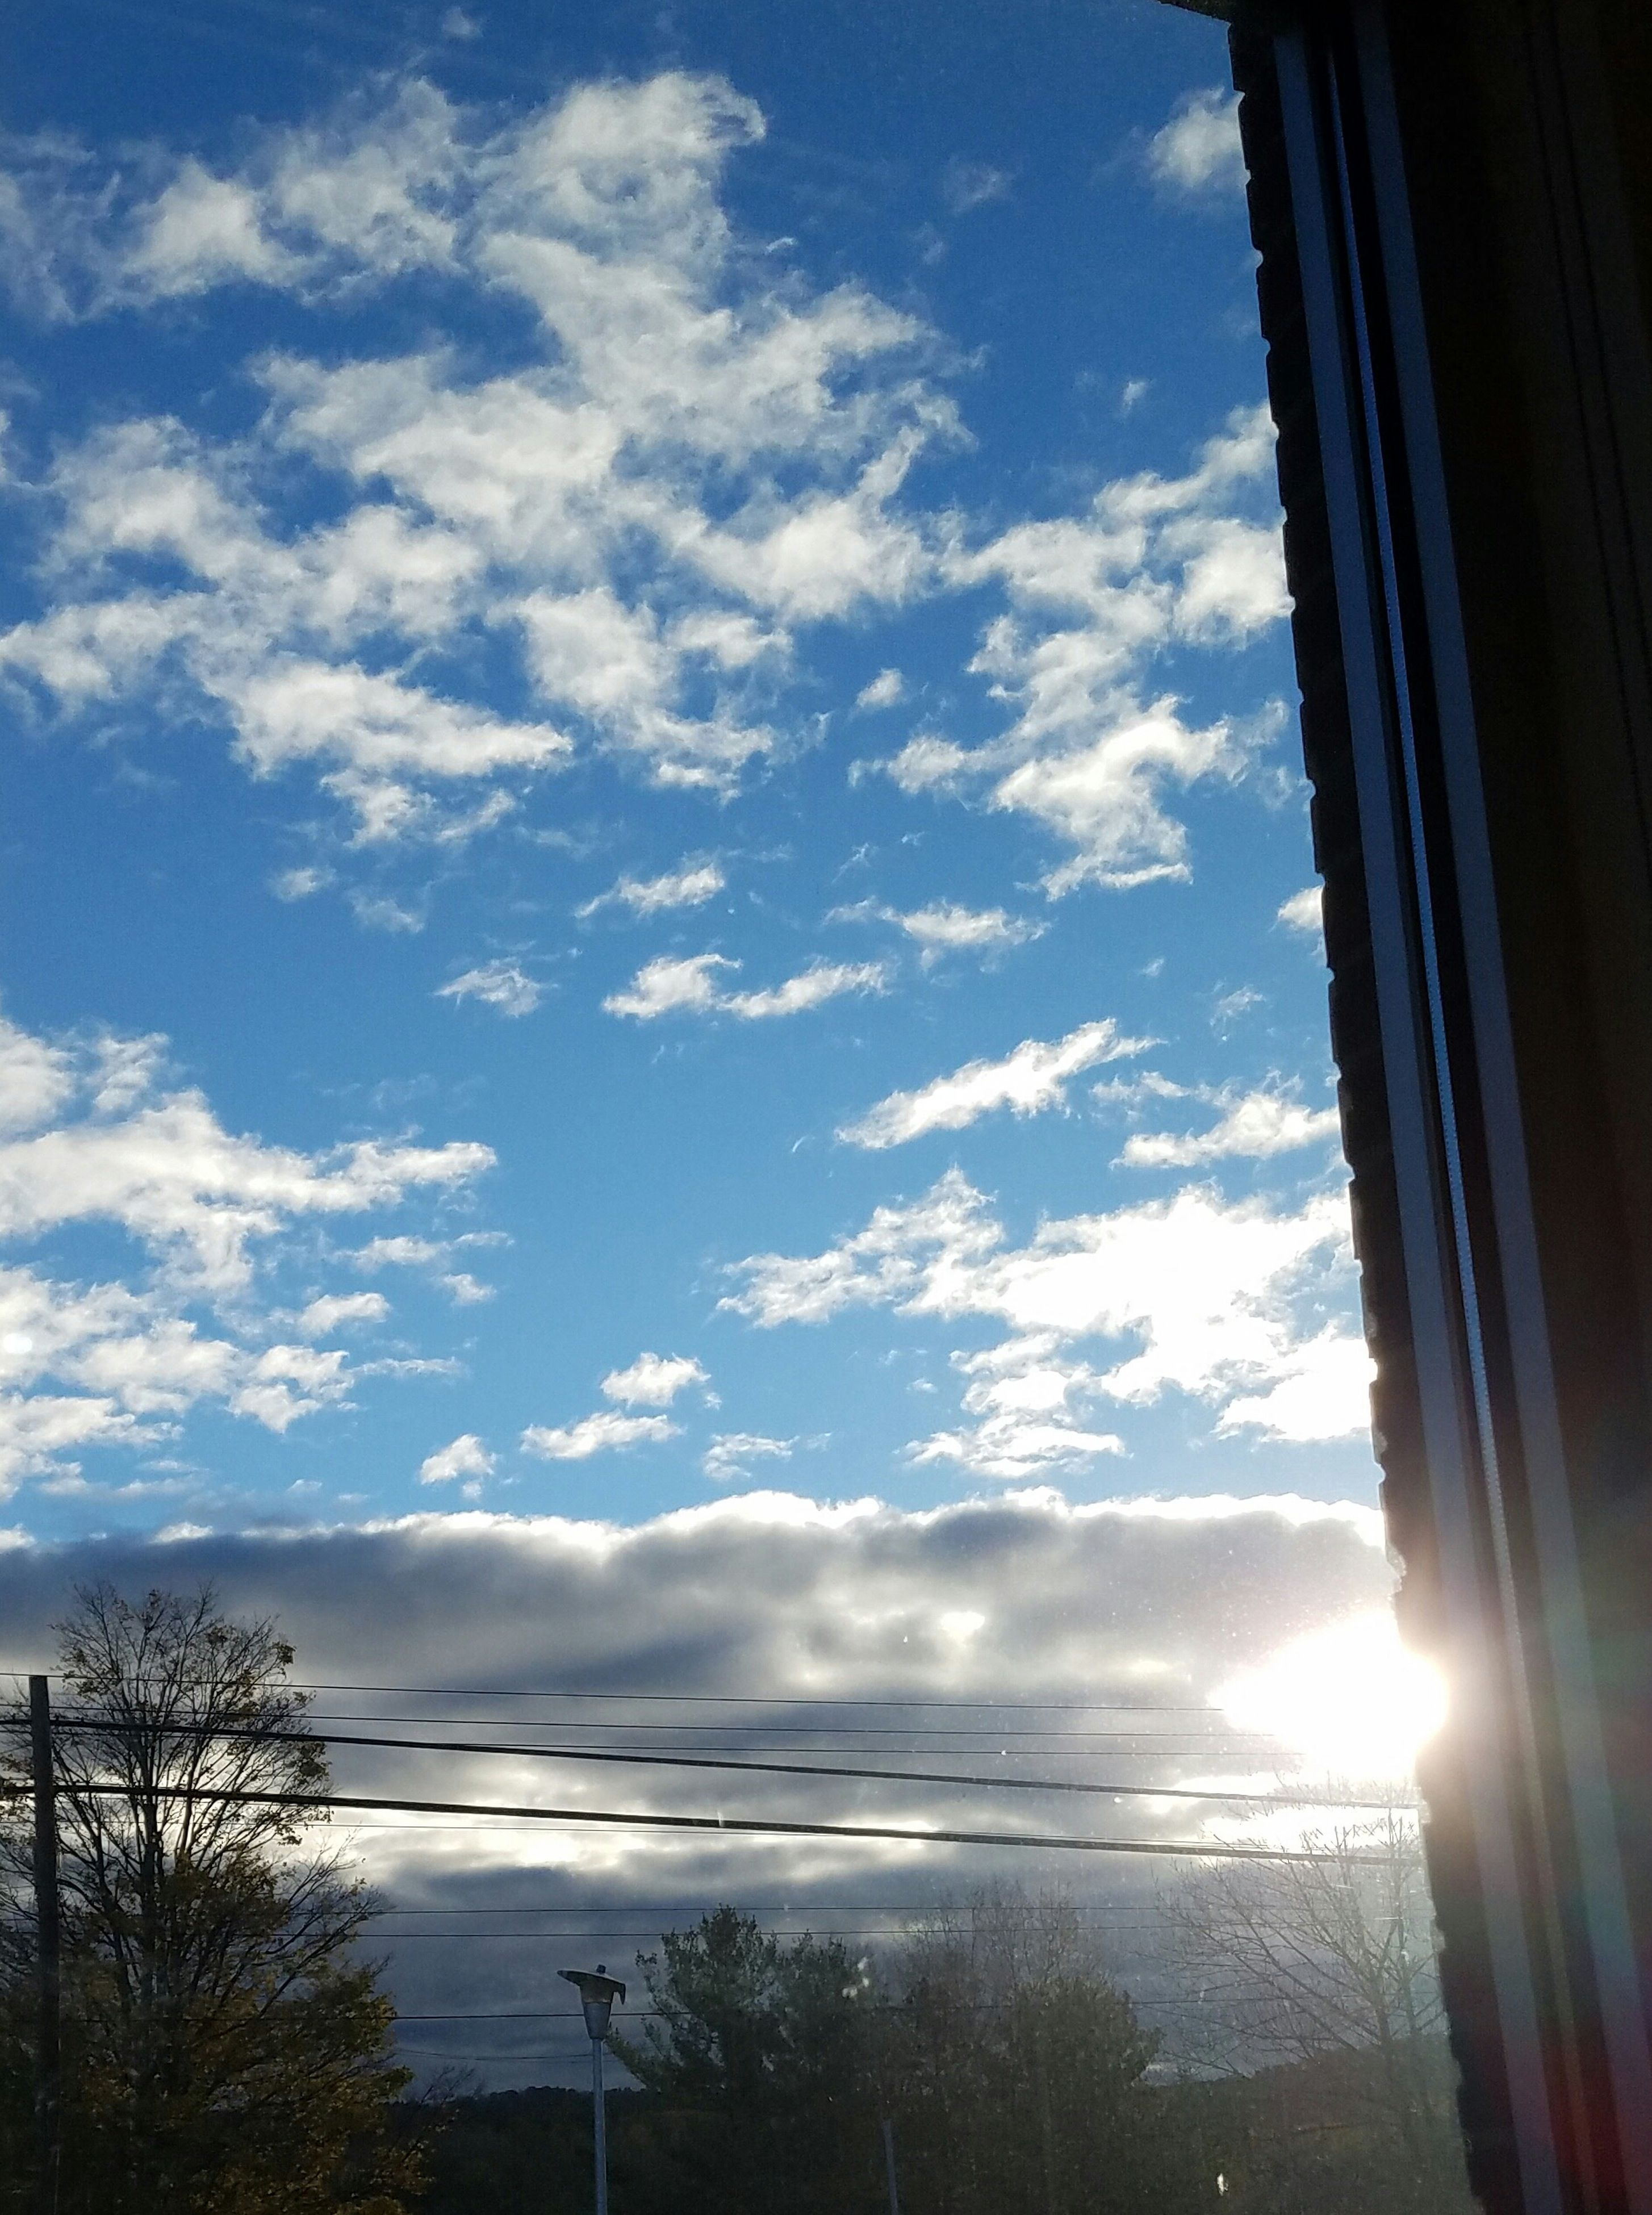 sky, cloud - sky, no people, tree, low angle view, day, outdoors, nature